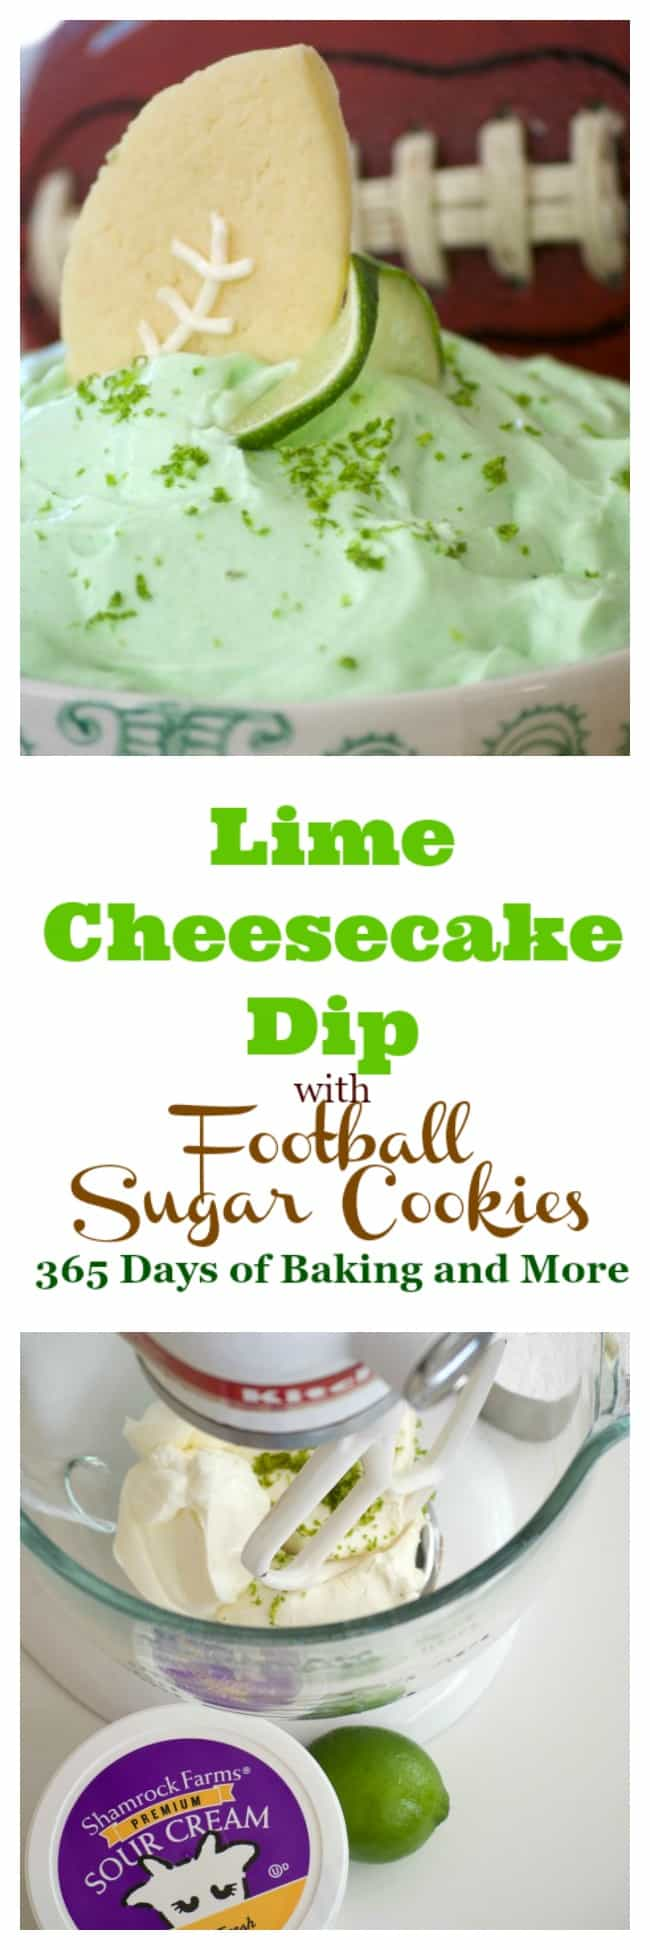 This Lime Cheesecake Dip made with cream cheese, confectioners' sugar, Shamrock Farms sour cream, lime juice and gelatin pairs perfectly with Football Sugar Cookies and some fresh fruit. It's the perfect Game Day treat and you'll be voted MVP!